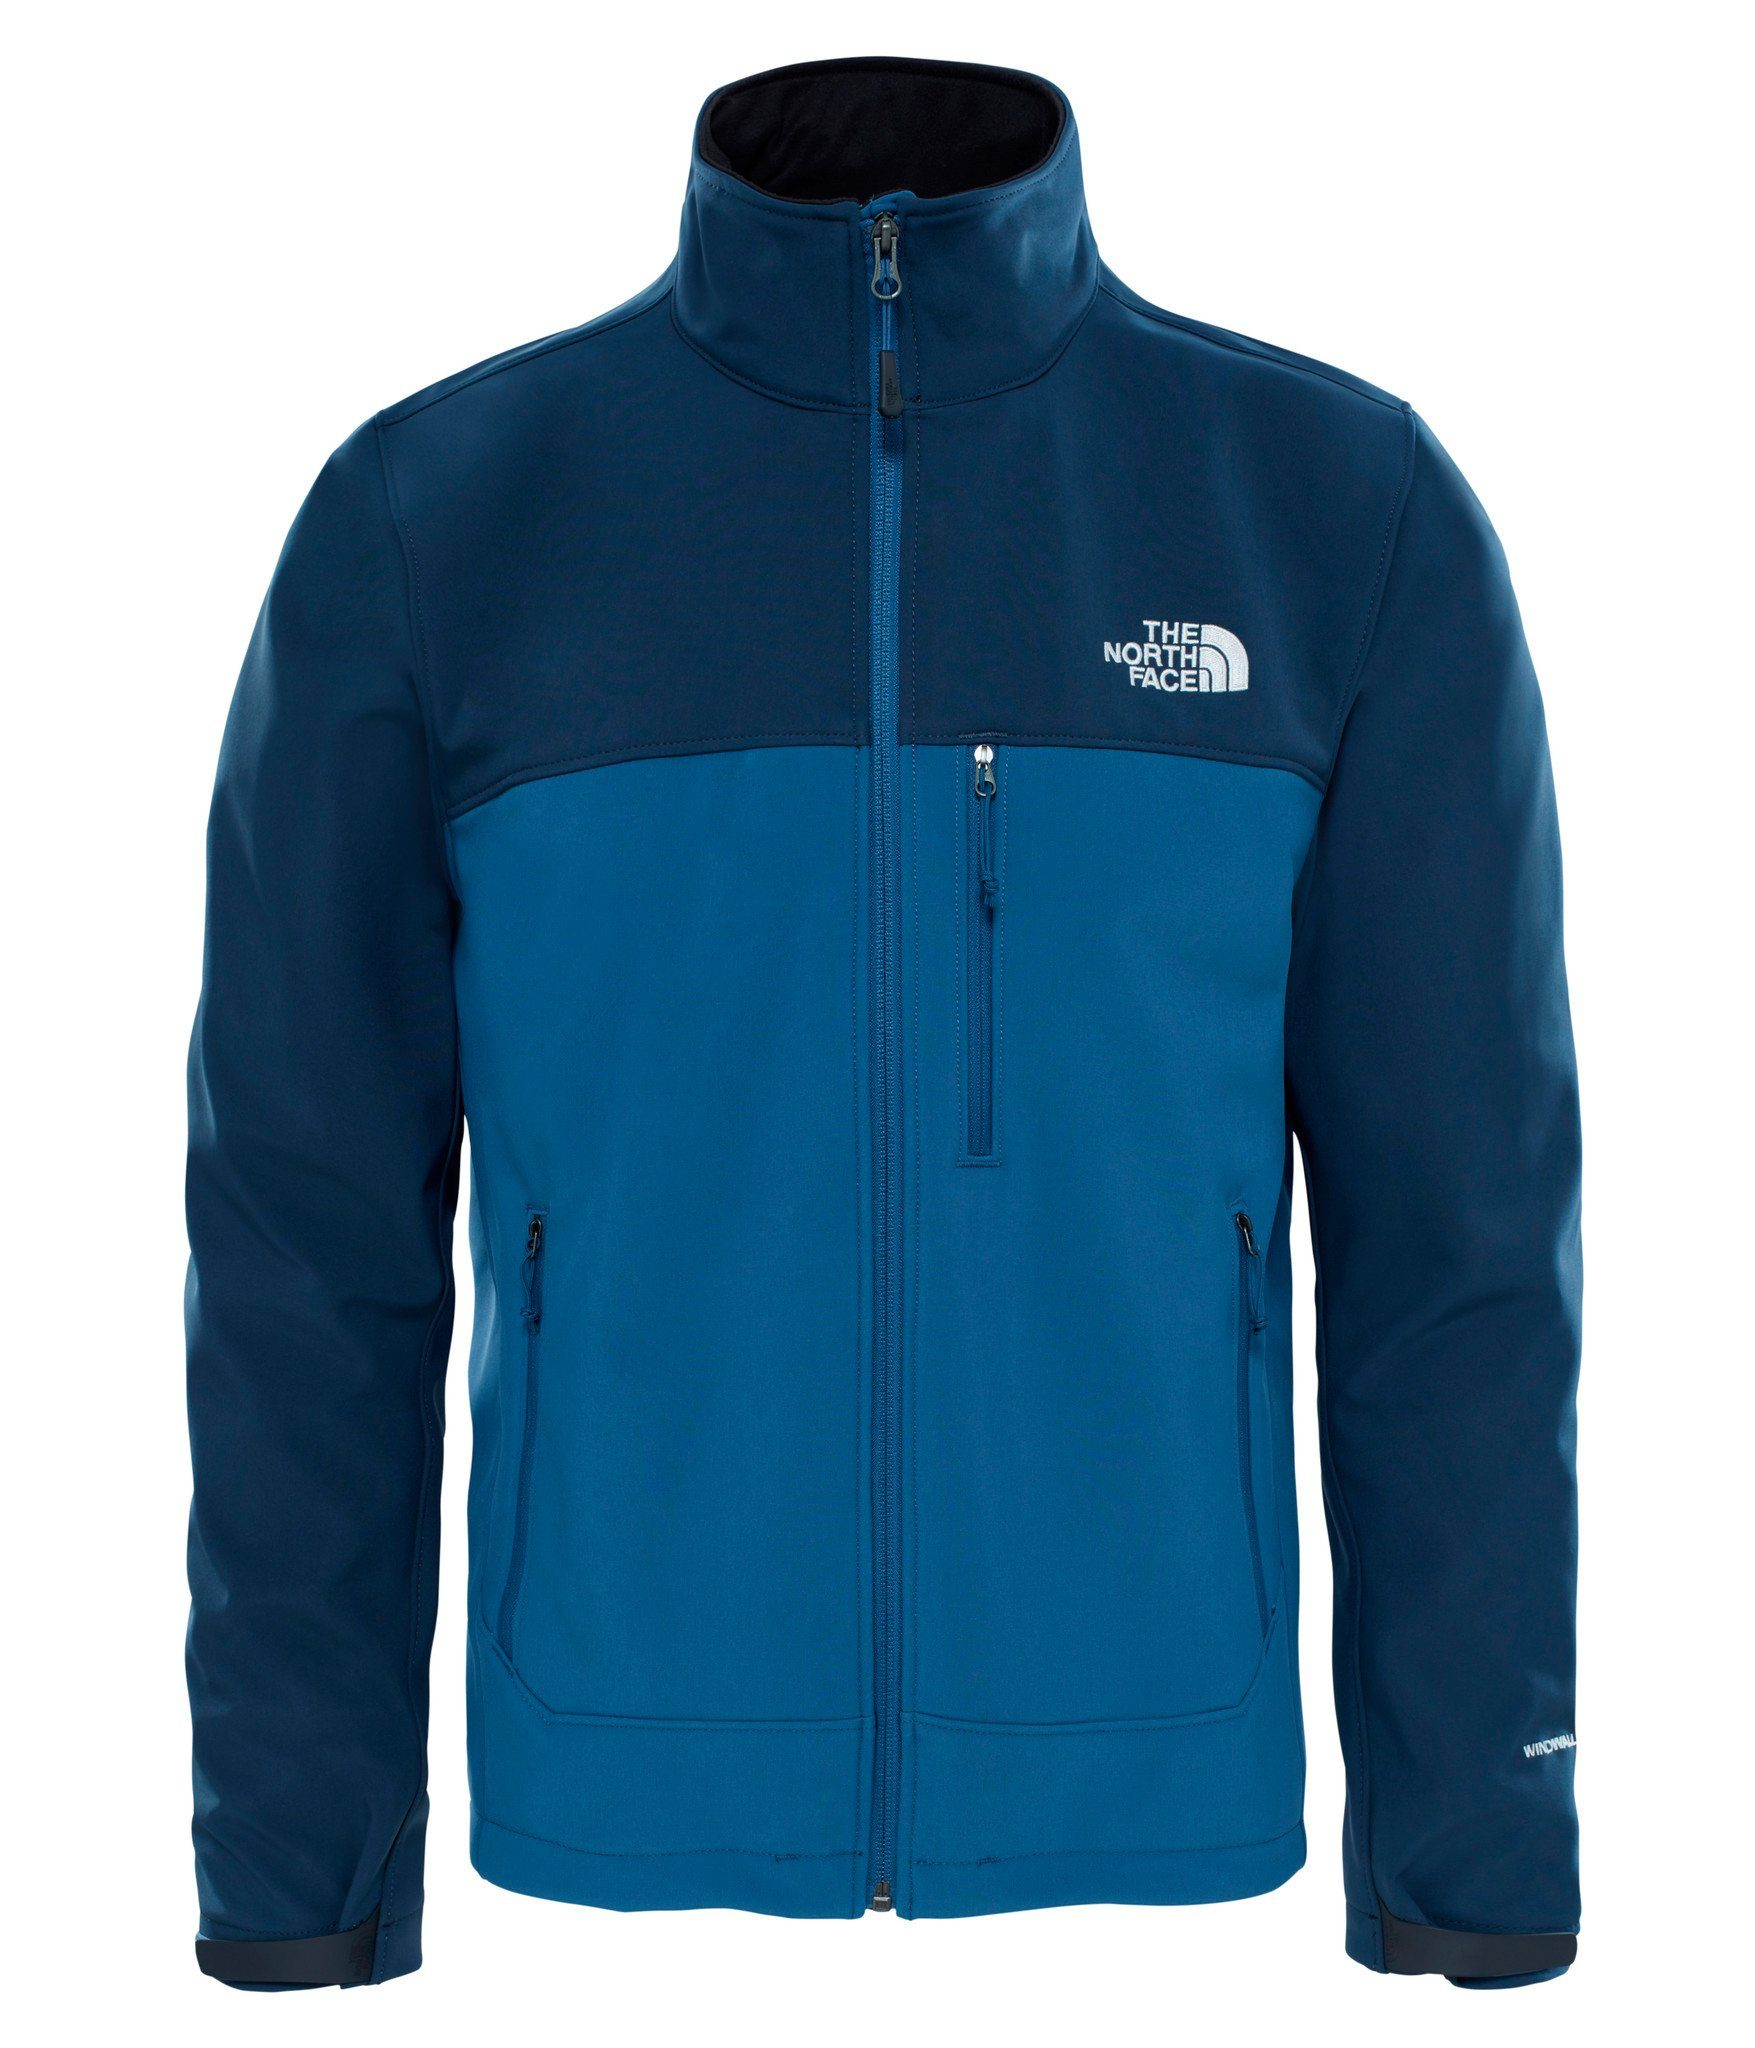 The North Face Outdoorjacke »Apex Bionic Softshell Jacket Men«